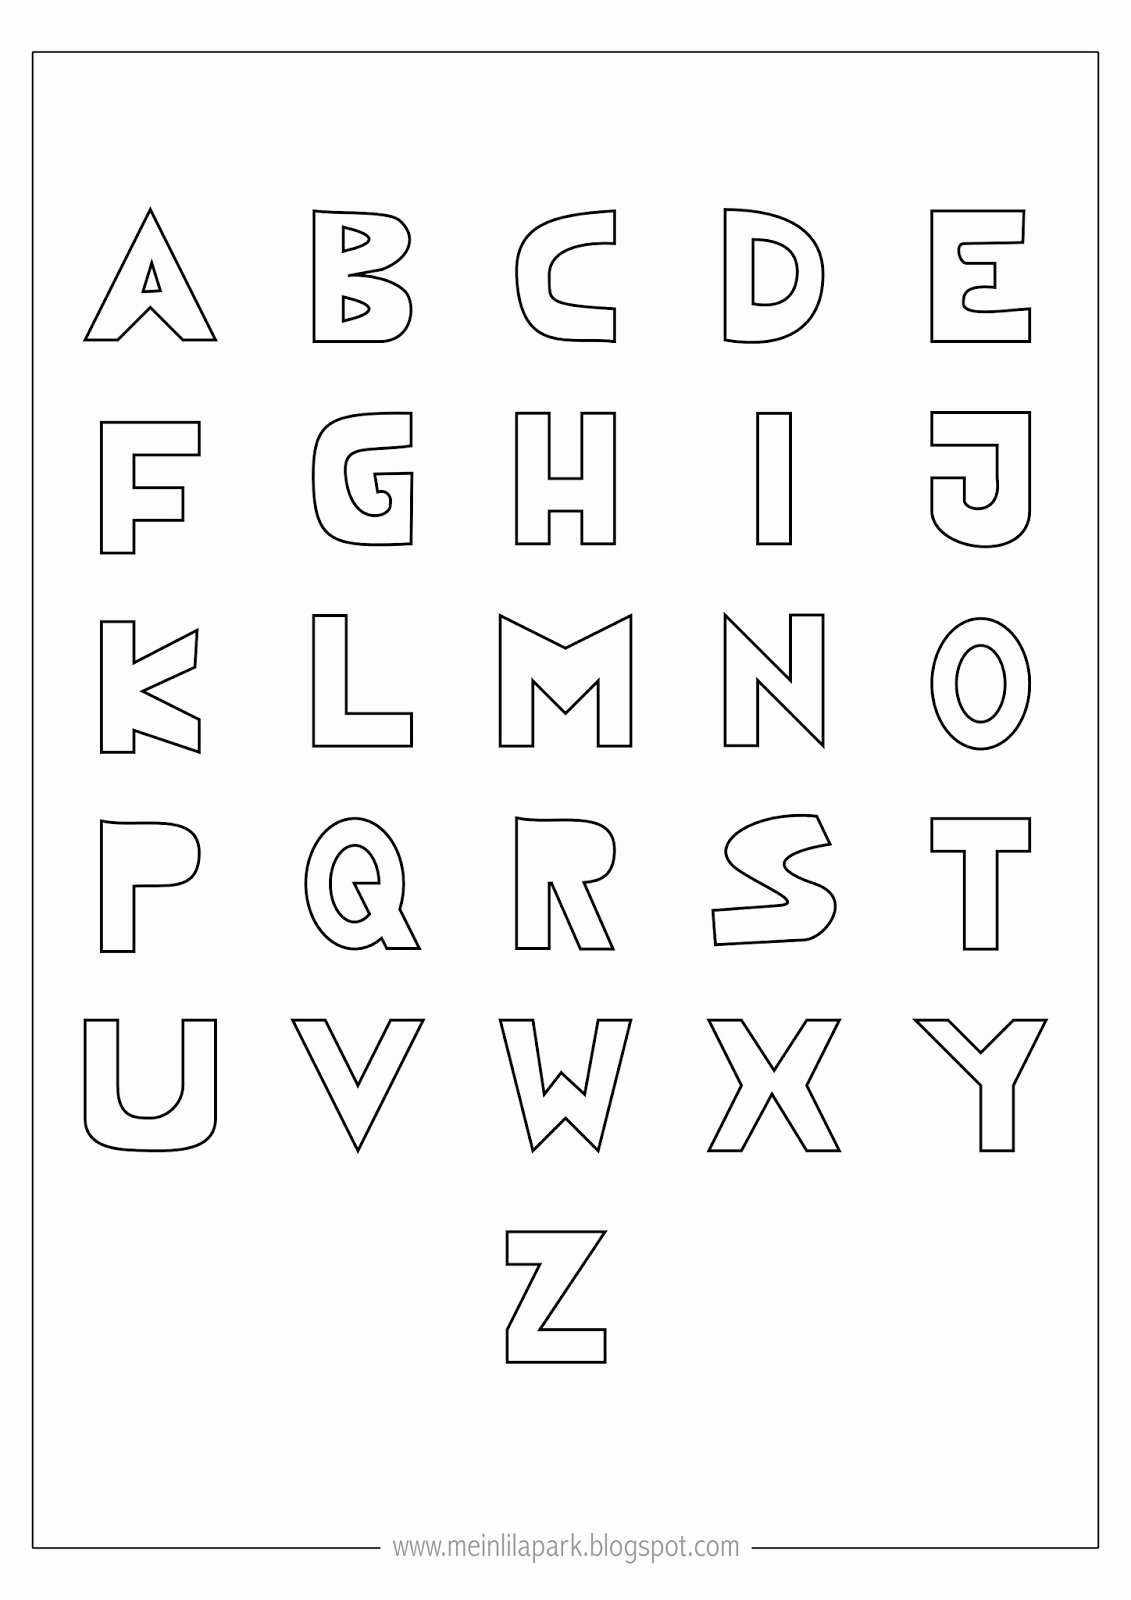 Printable Alphabet Letters Free New Free Printable Coloring Alphabet Letters Ausdruckbares